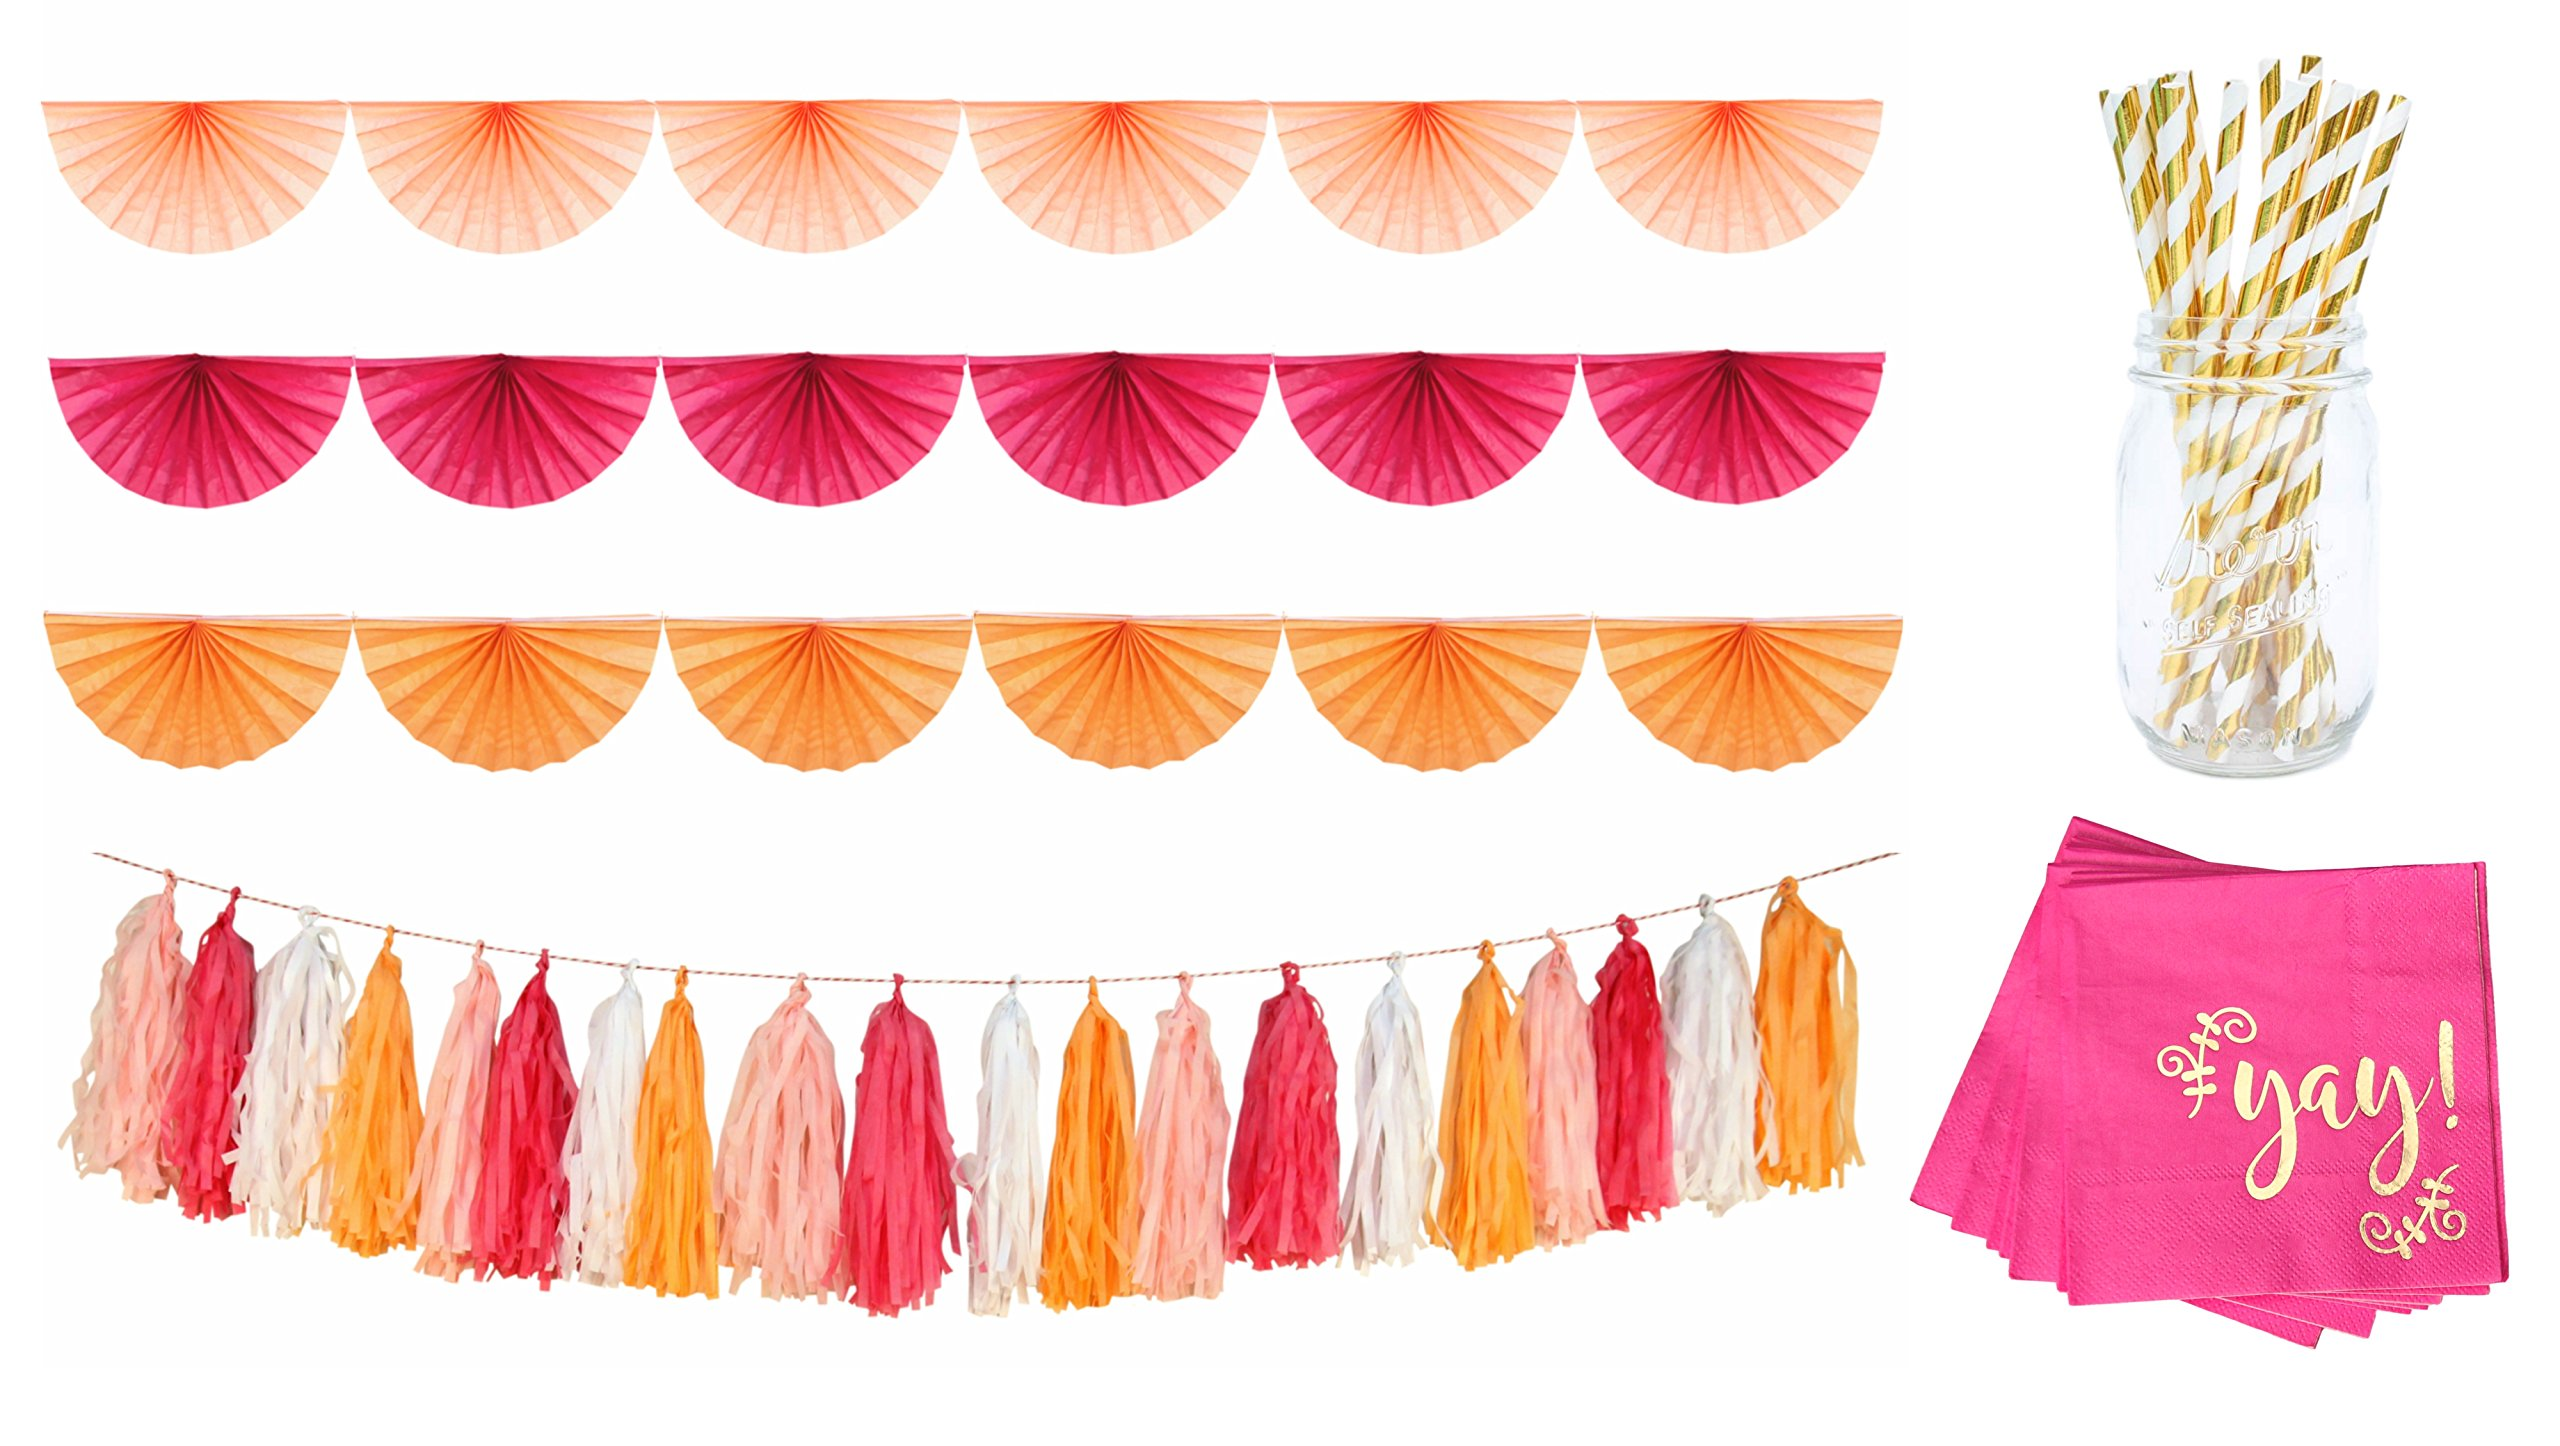 Pink Party Decorations   Tissue Tassel, Paper Fan Garland Bunting, Cocktail Napkins and Gold Paper Straws Kit by Blast in a Box (Tassels and Fan Garland Set, Sherbert)